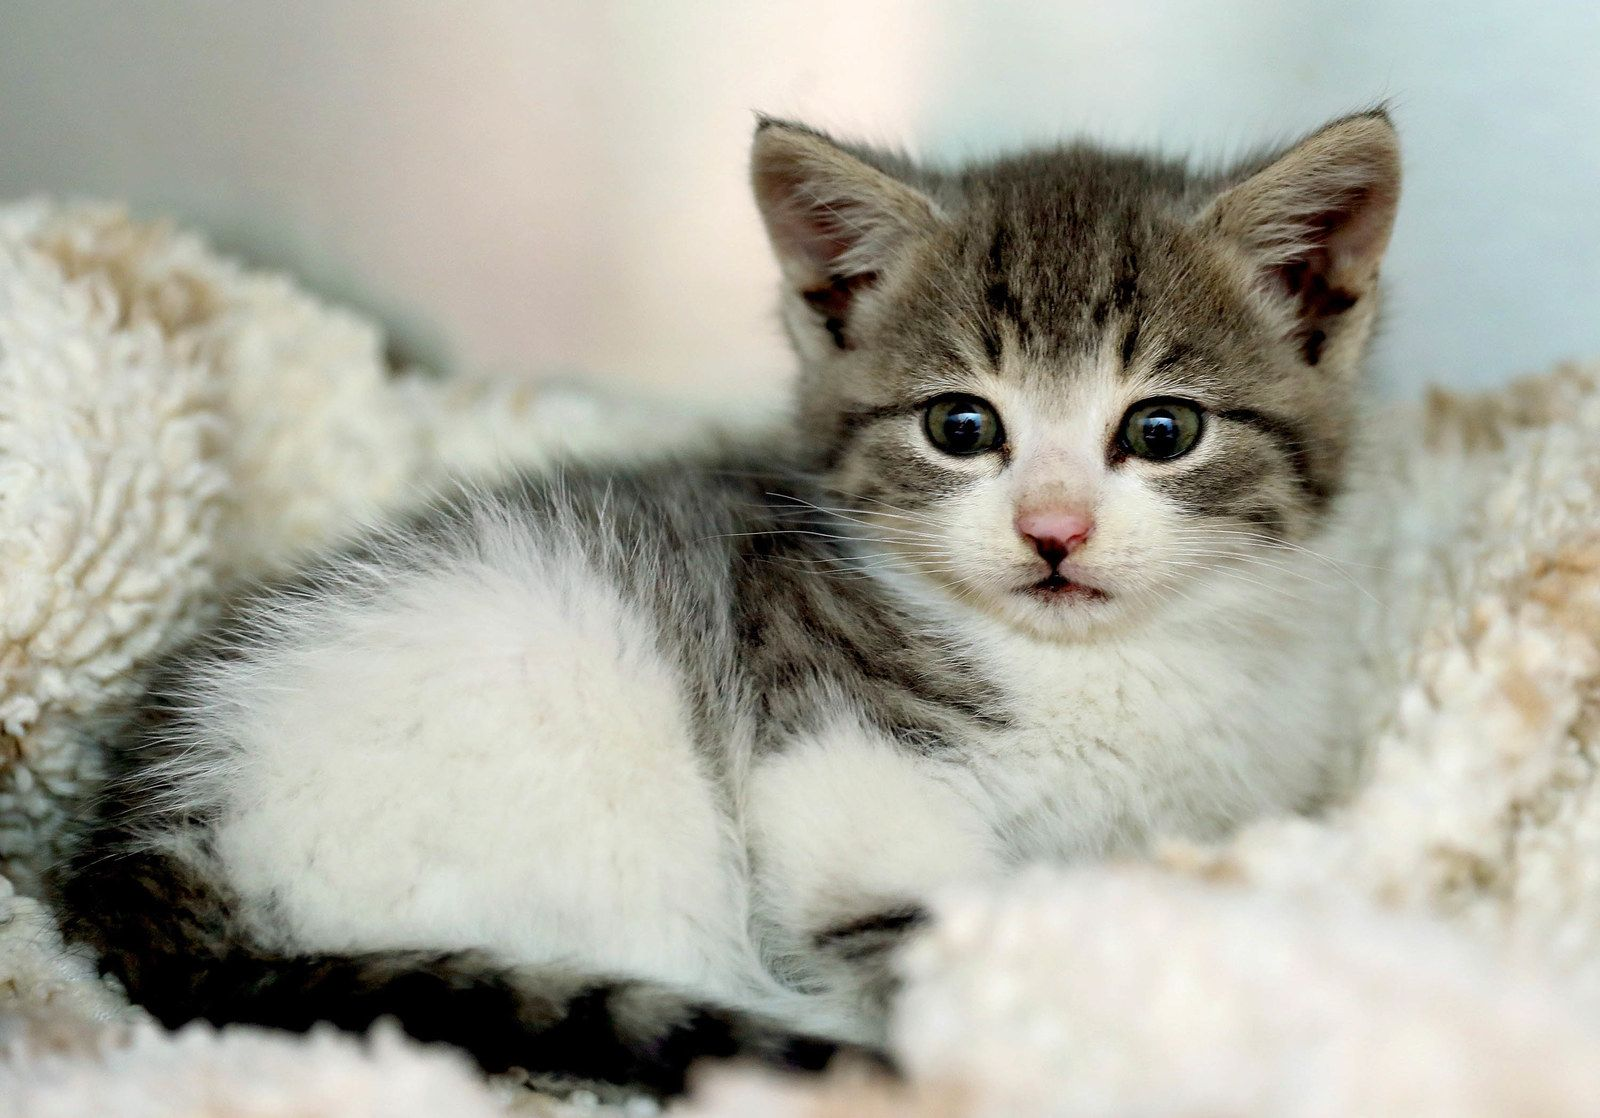 A Renegade Kitten Survived A Cross Country Road Trip By Clinging To A Car Cats Kittens Kitten